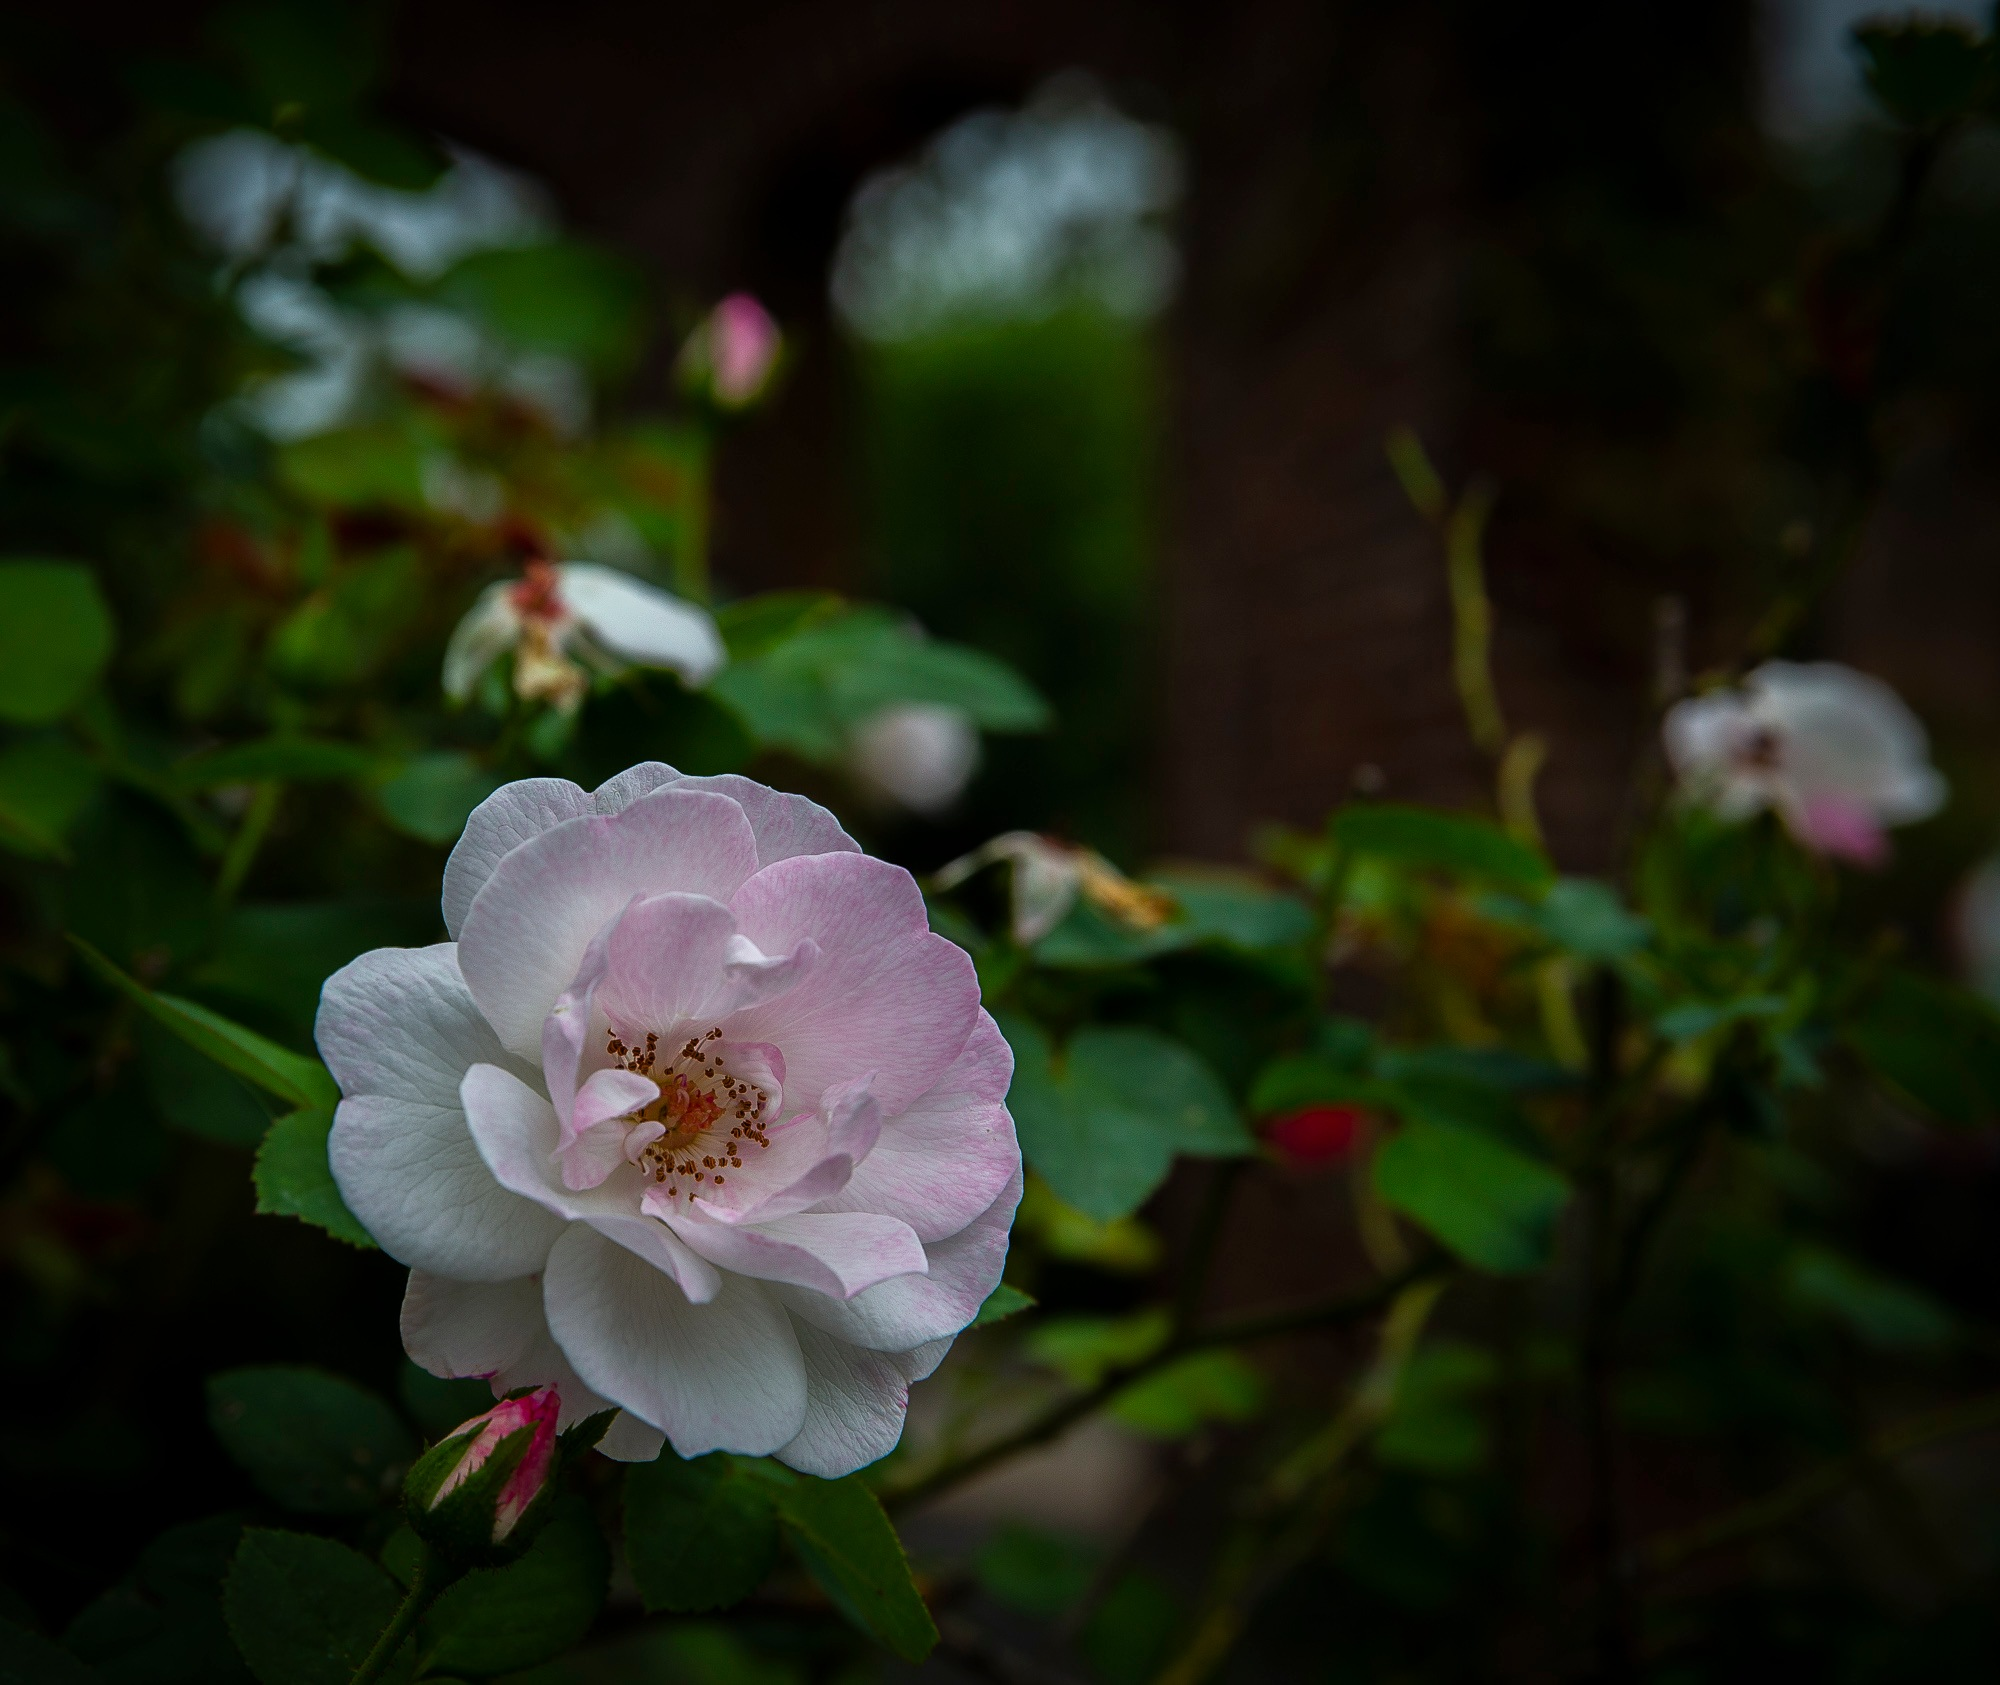 A Rose By Any Other Name by Razorsharp